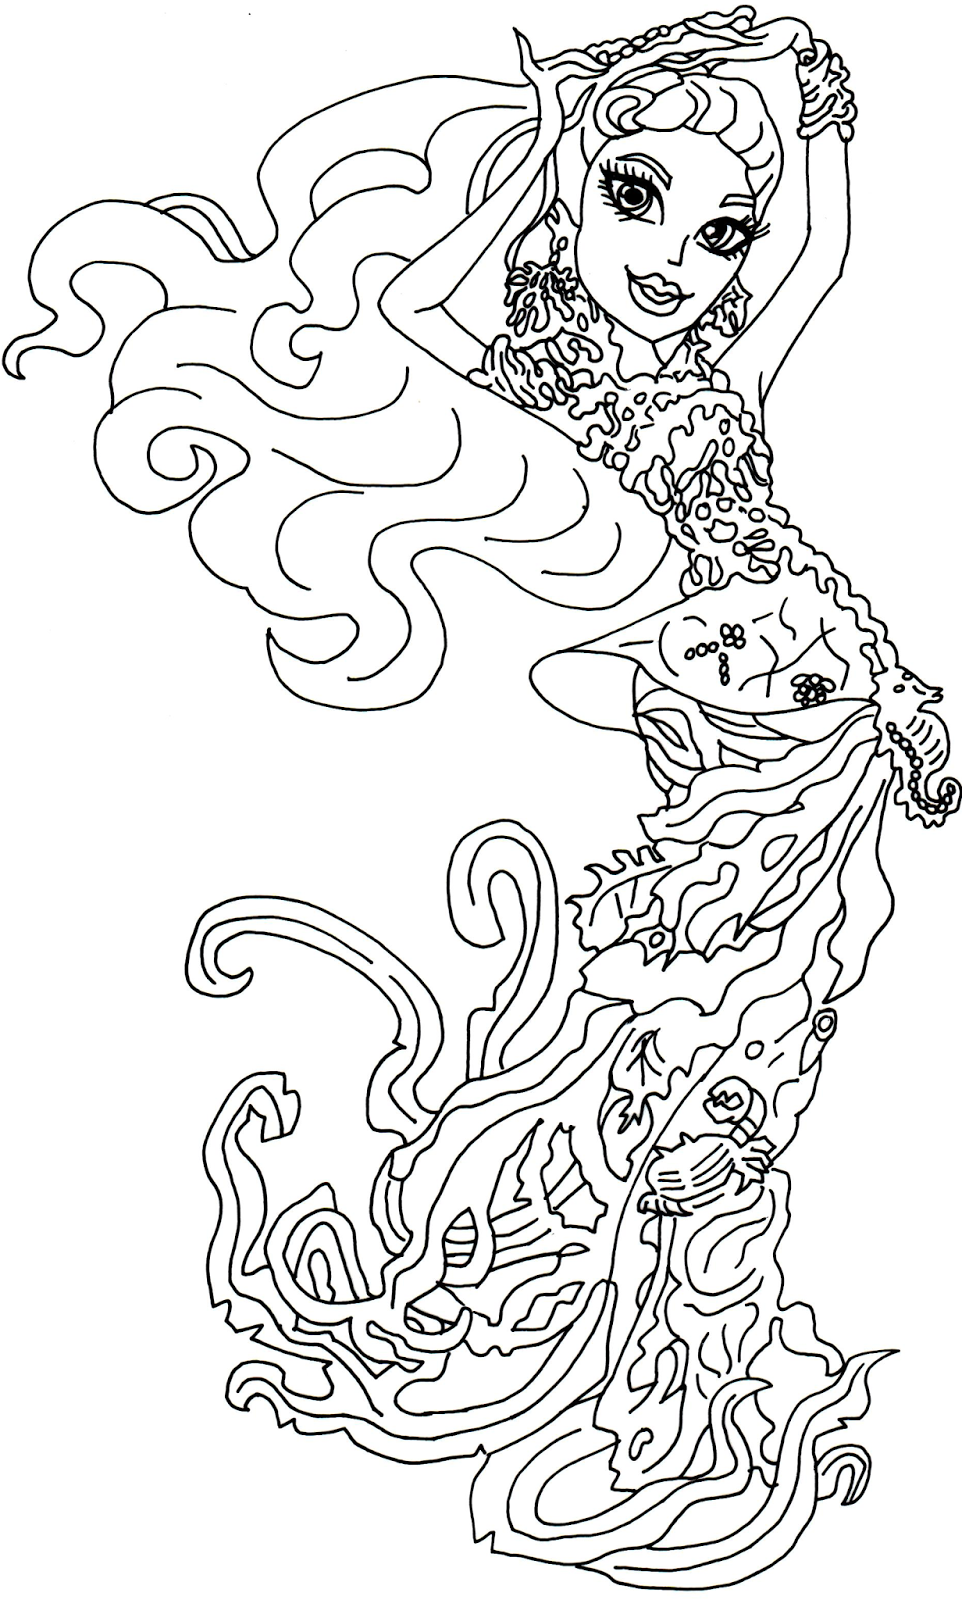 Free printable monster high coloring pages posea reef for Monster high free coloring pages